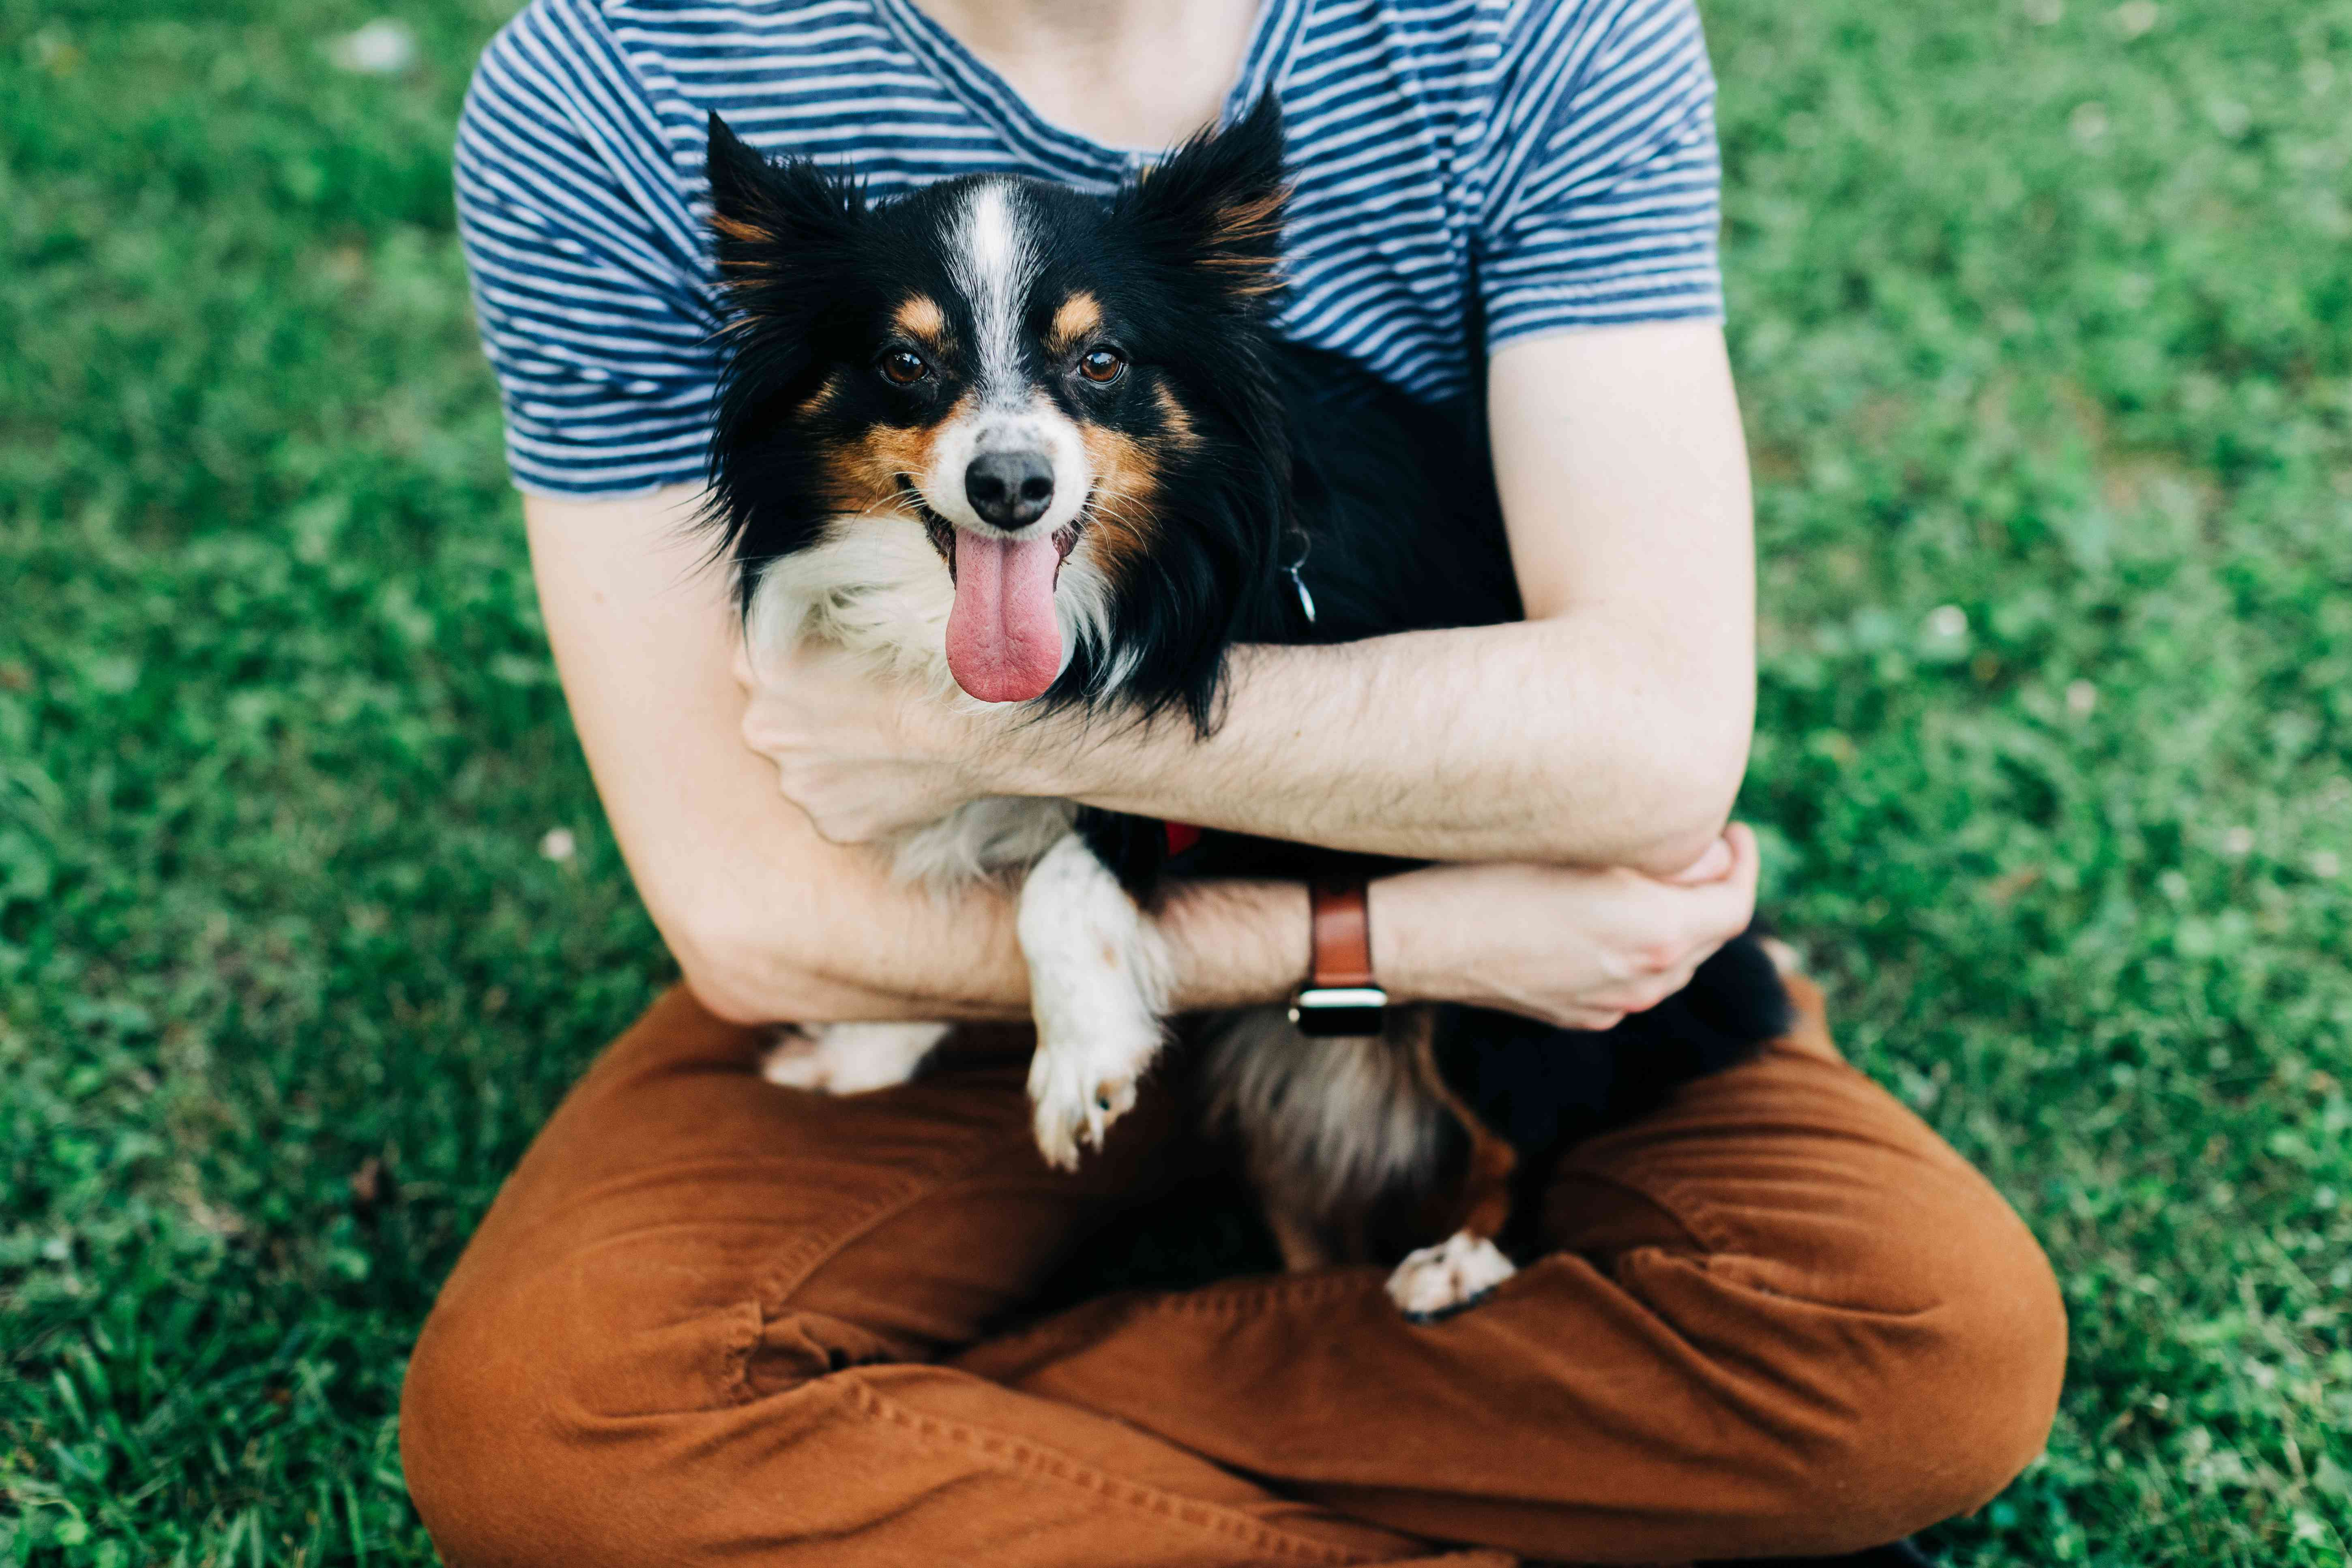 Black and white dog being held by owner